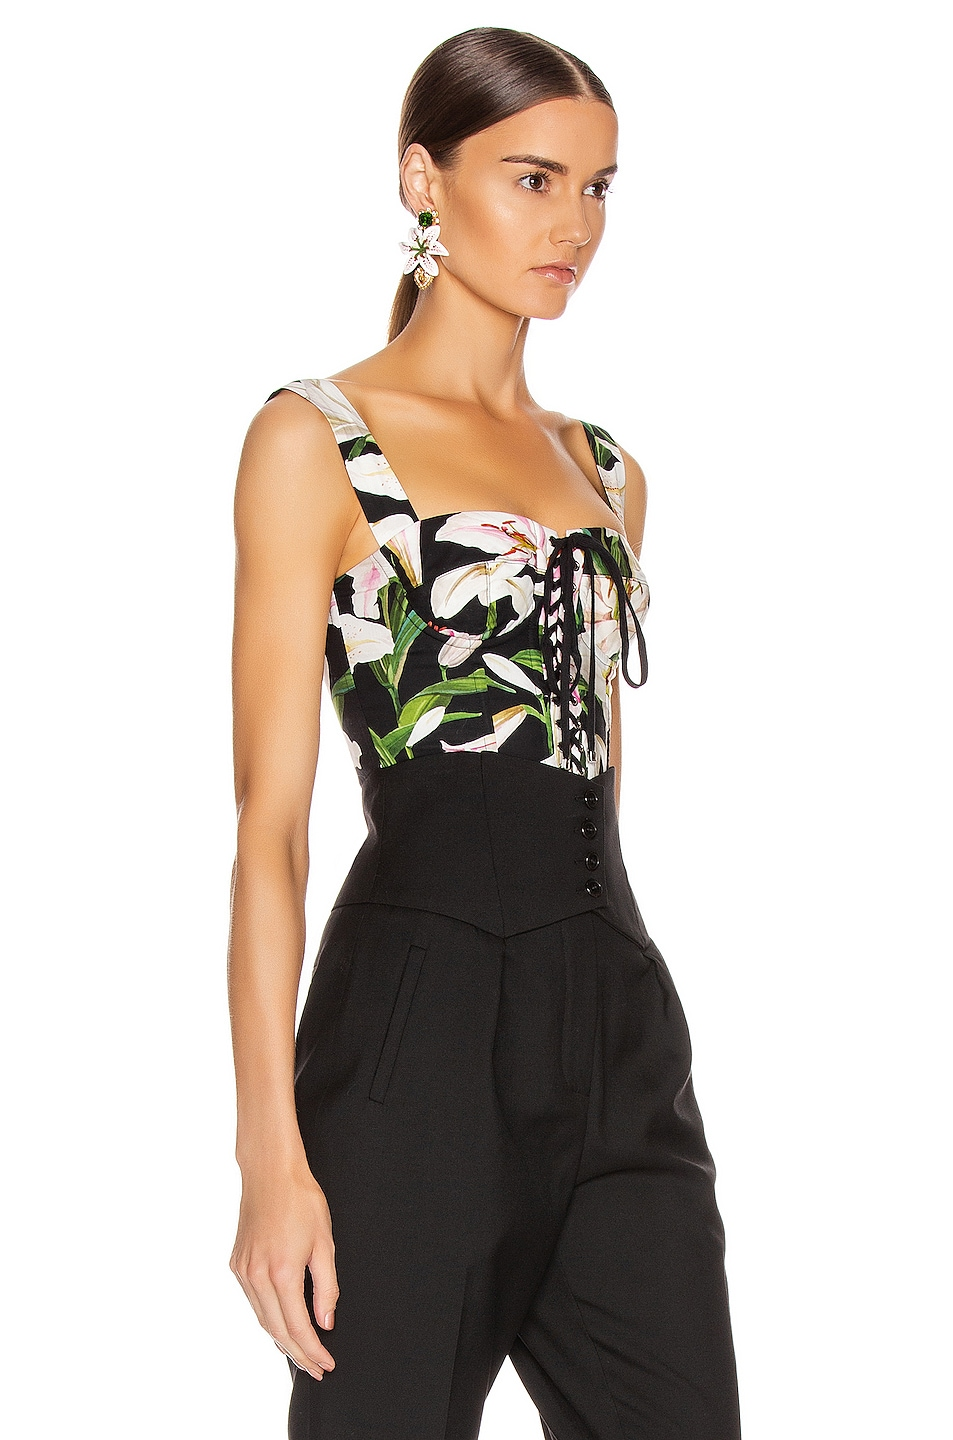 Image 3 of Dolce & Gabbana Lace Up Short Corset Top in Black Floral